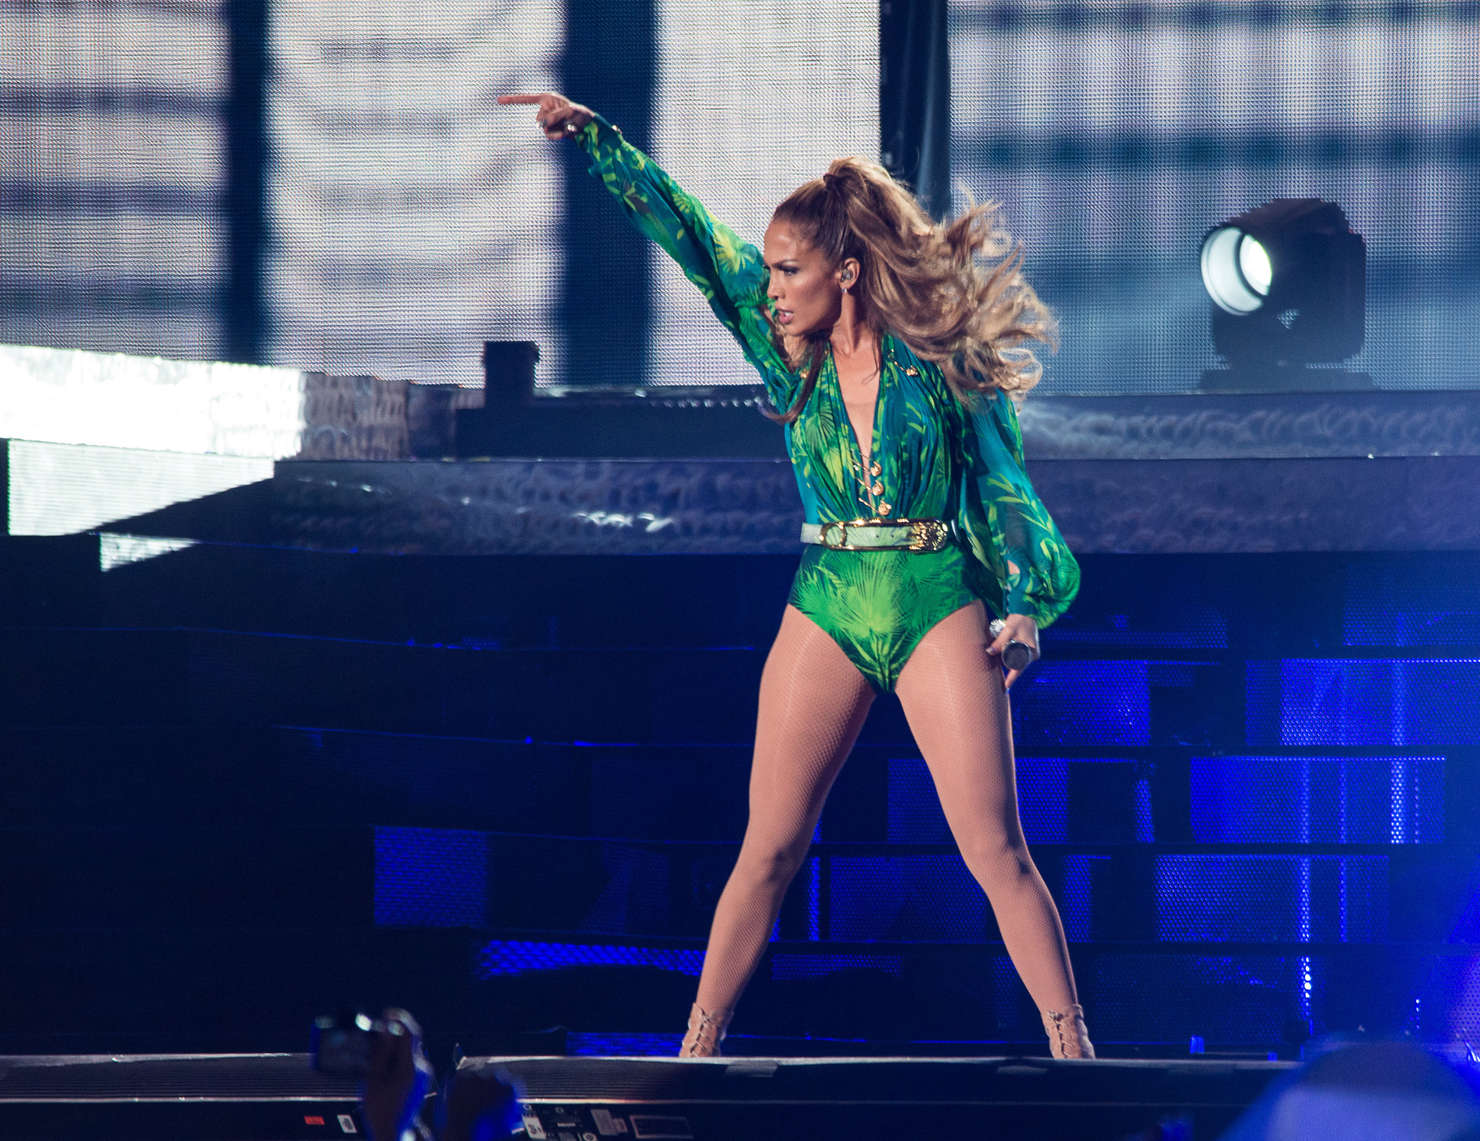 Jennifer lopez on stage live in concert in the bronx 13 Where does jennifer lopez live